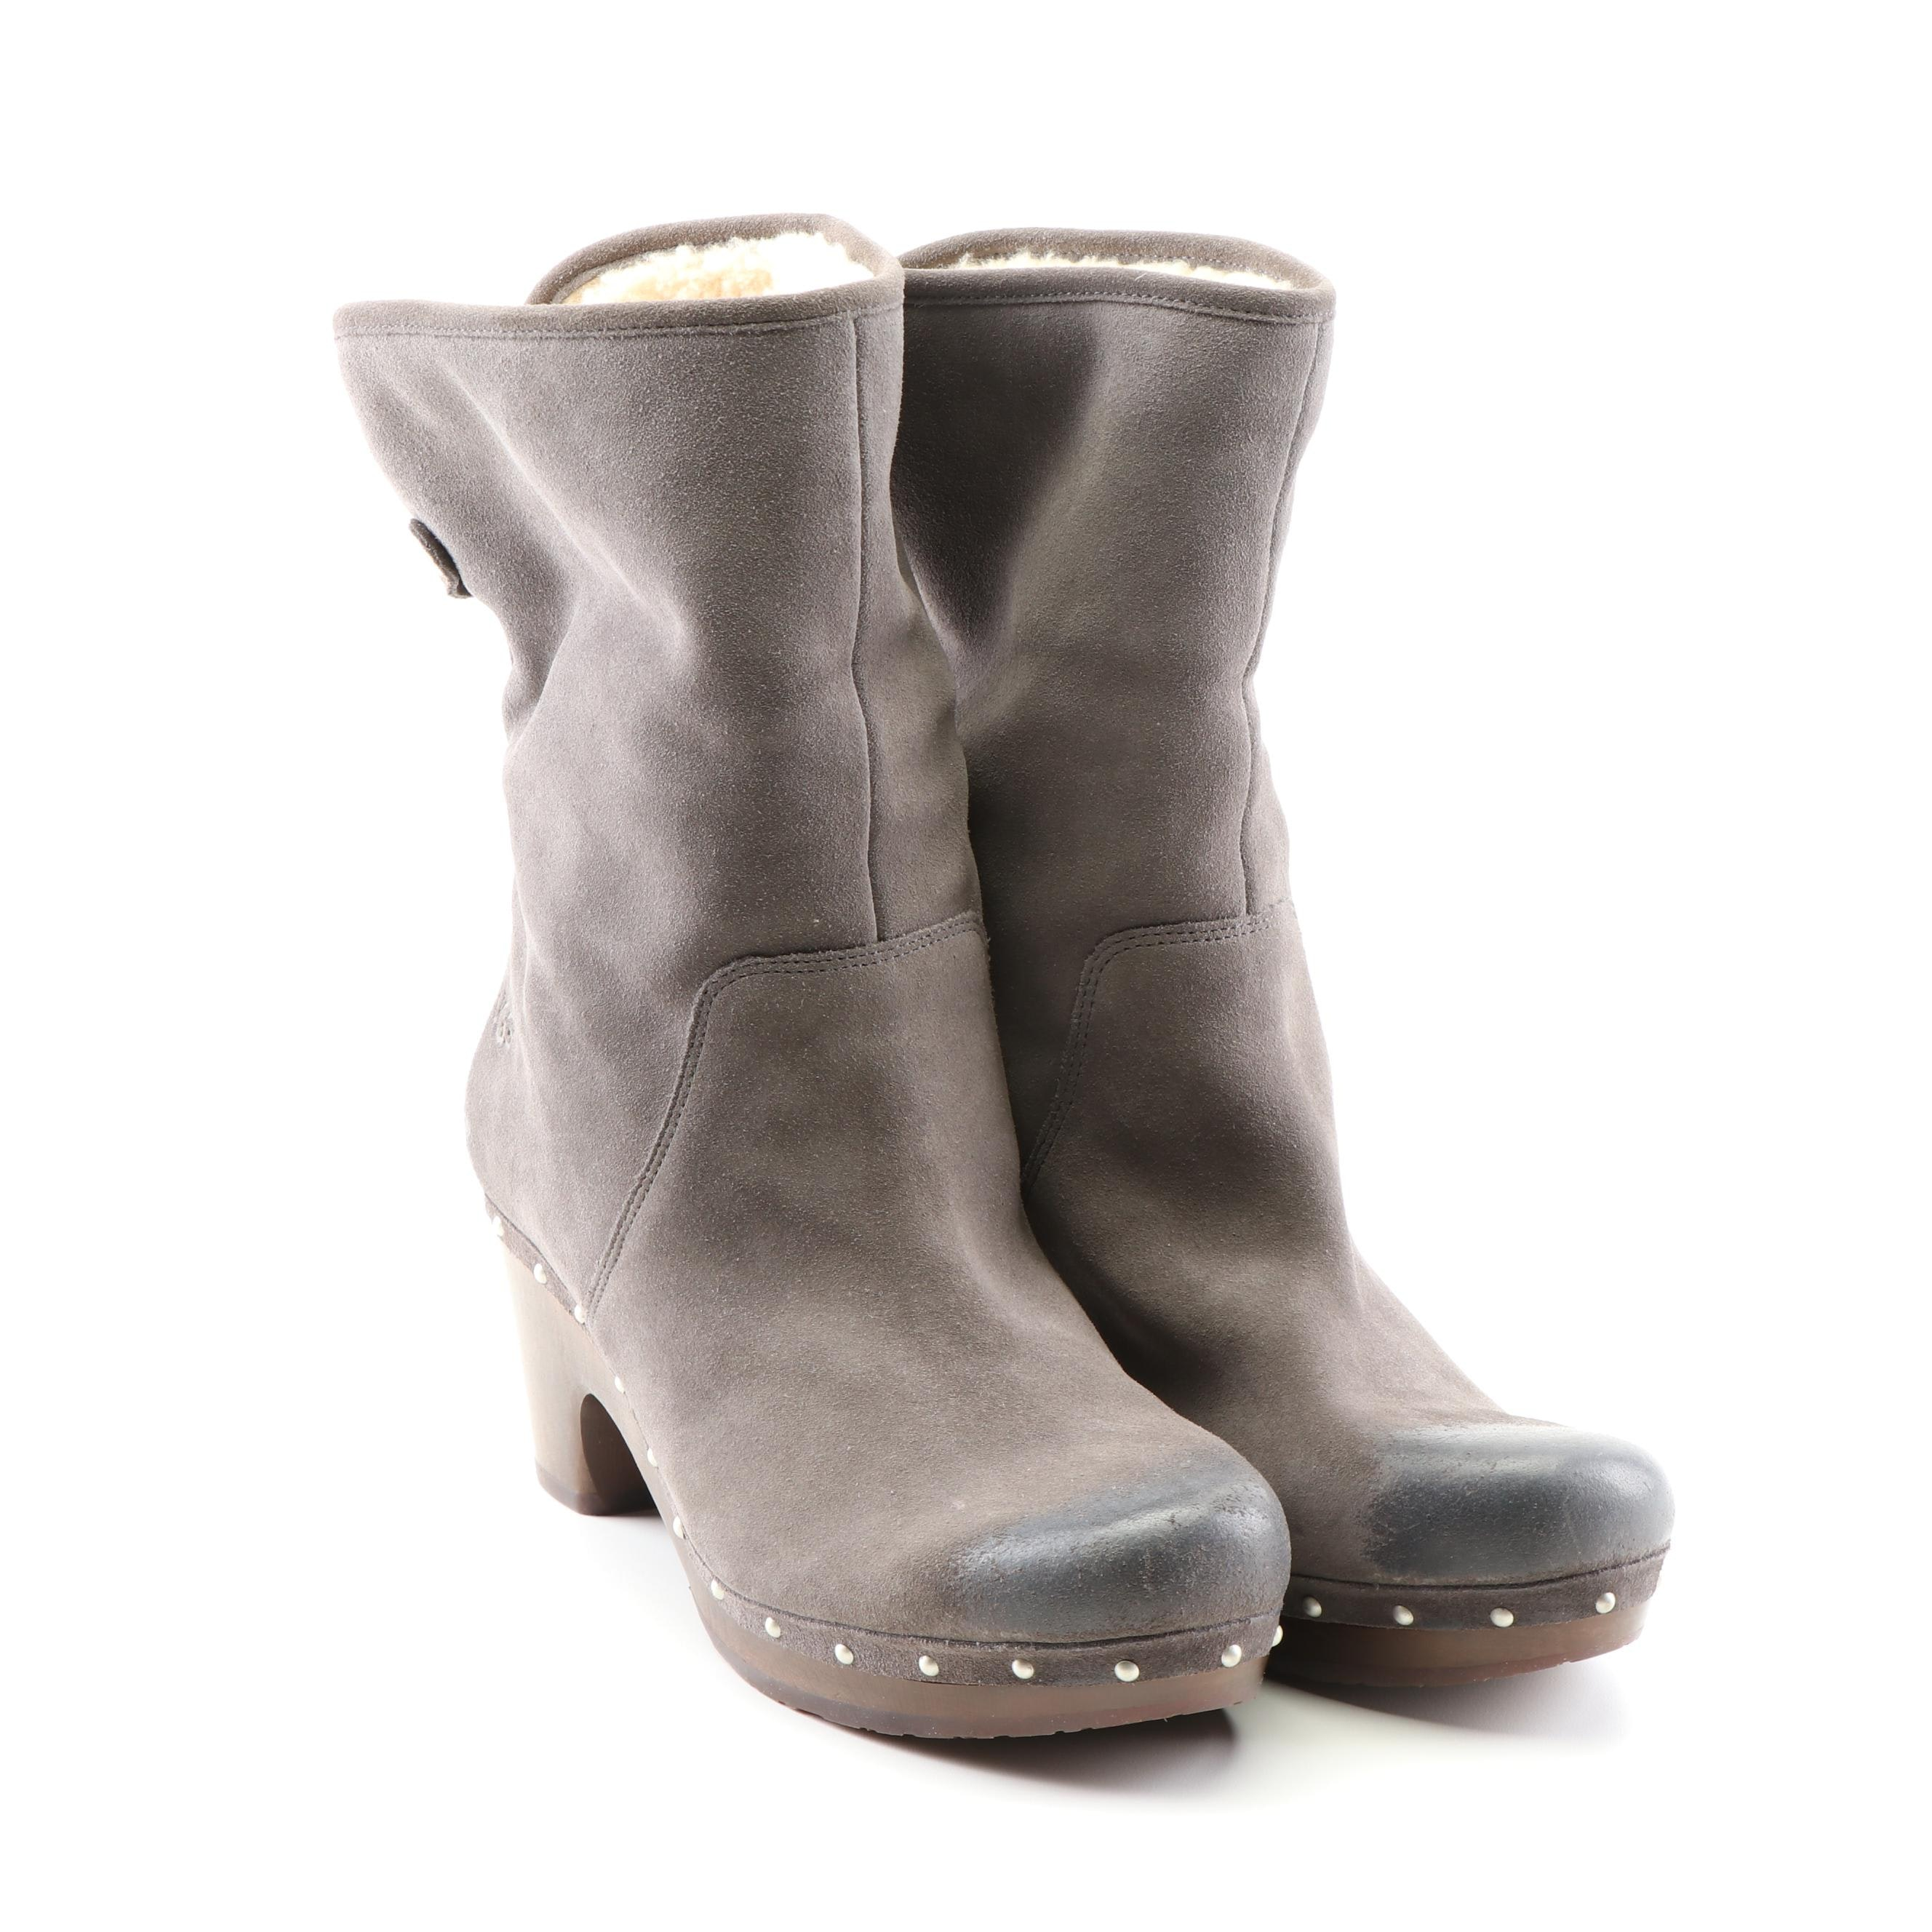 Ugg Australia Gray Suede and Shearling Clog Boots